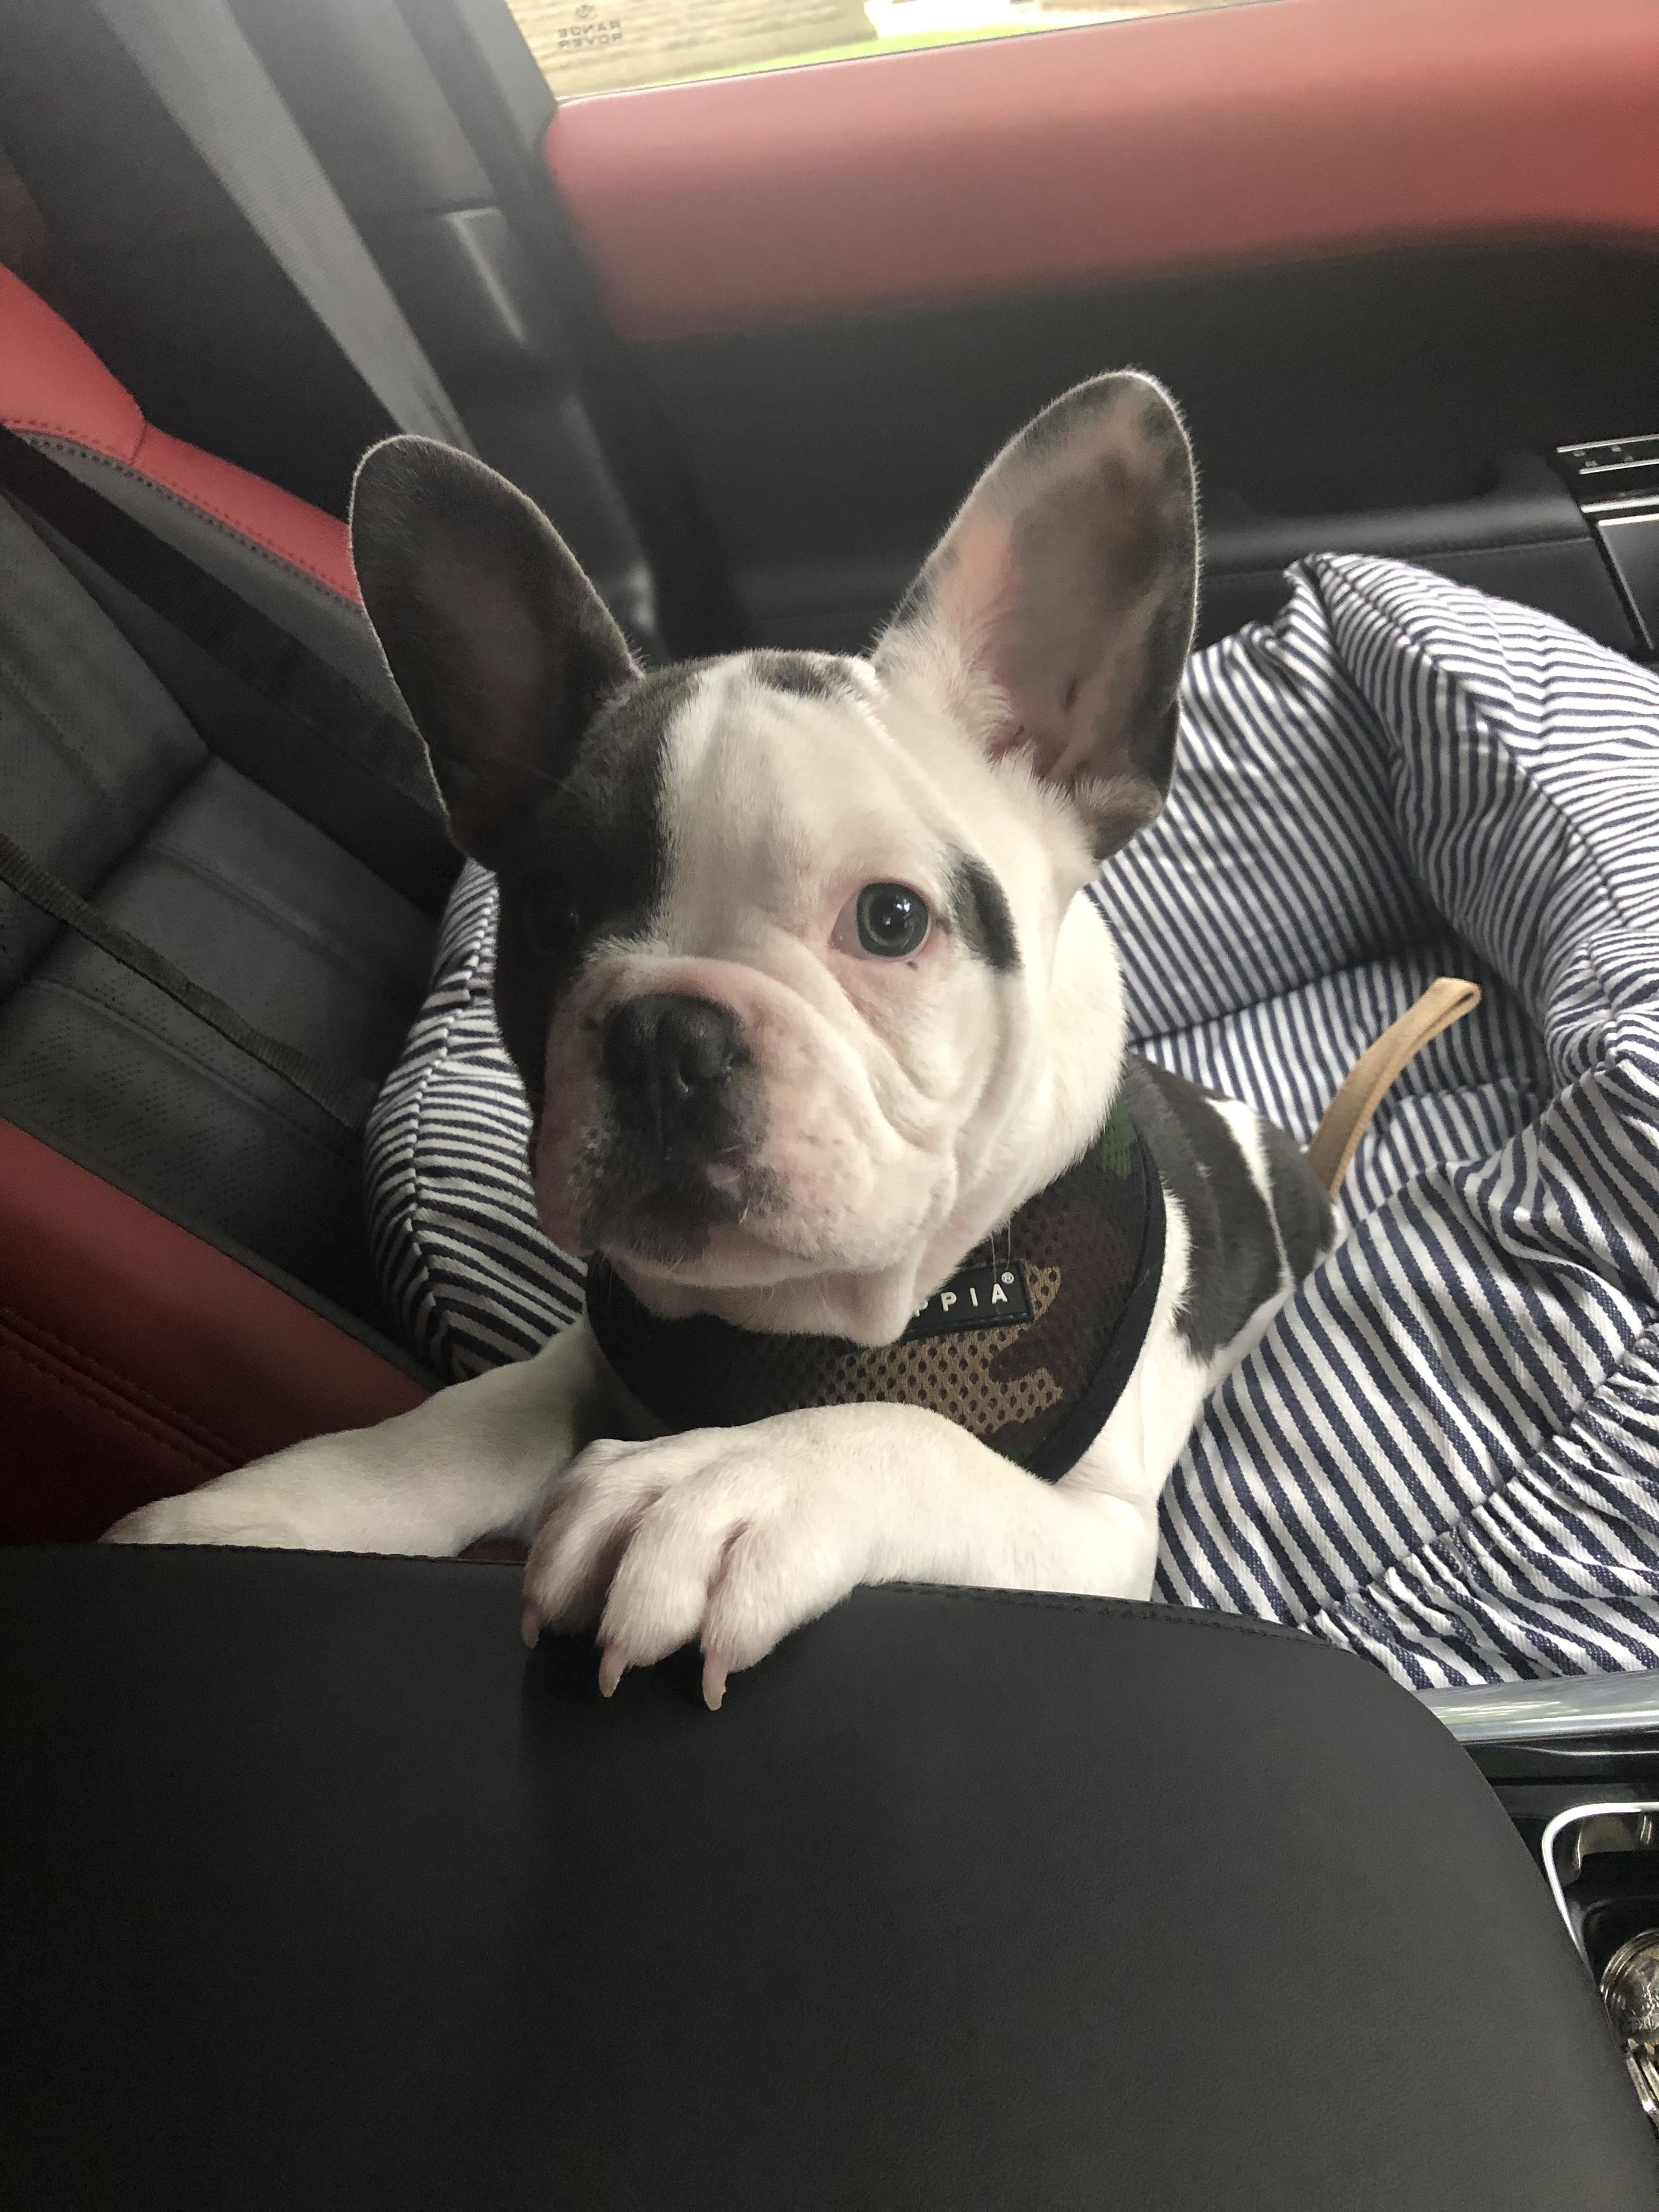 Pin by lj53lou on Frenchie cuteness Boston terrier